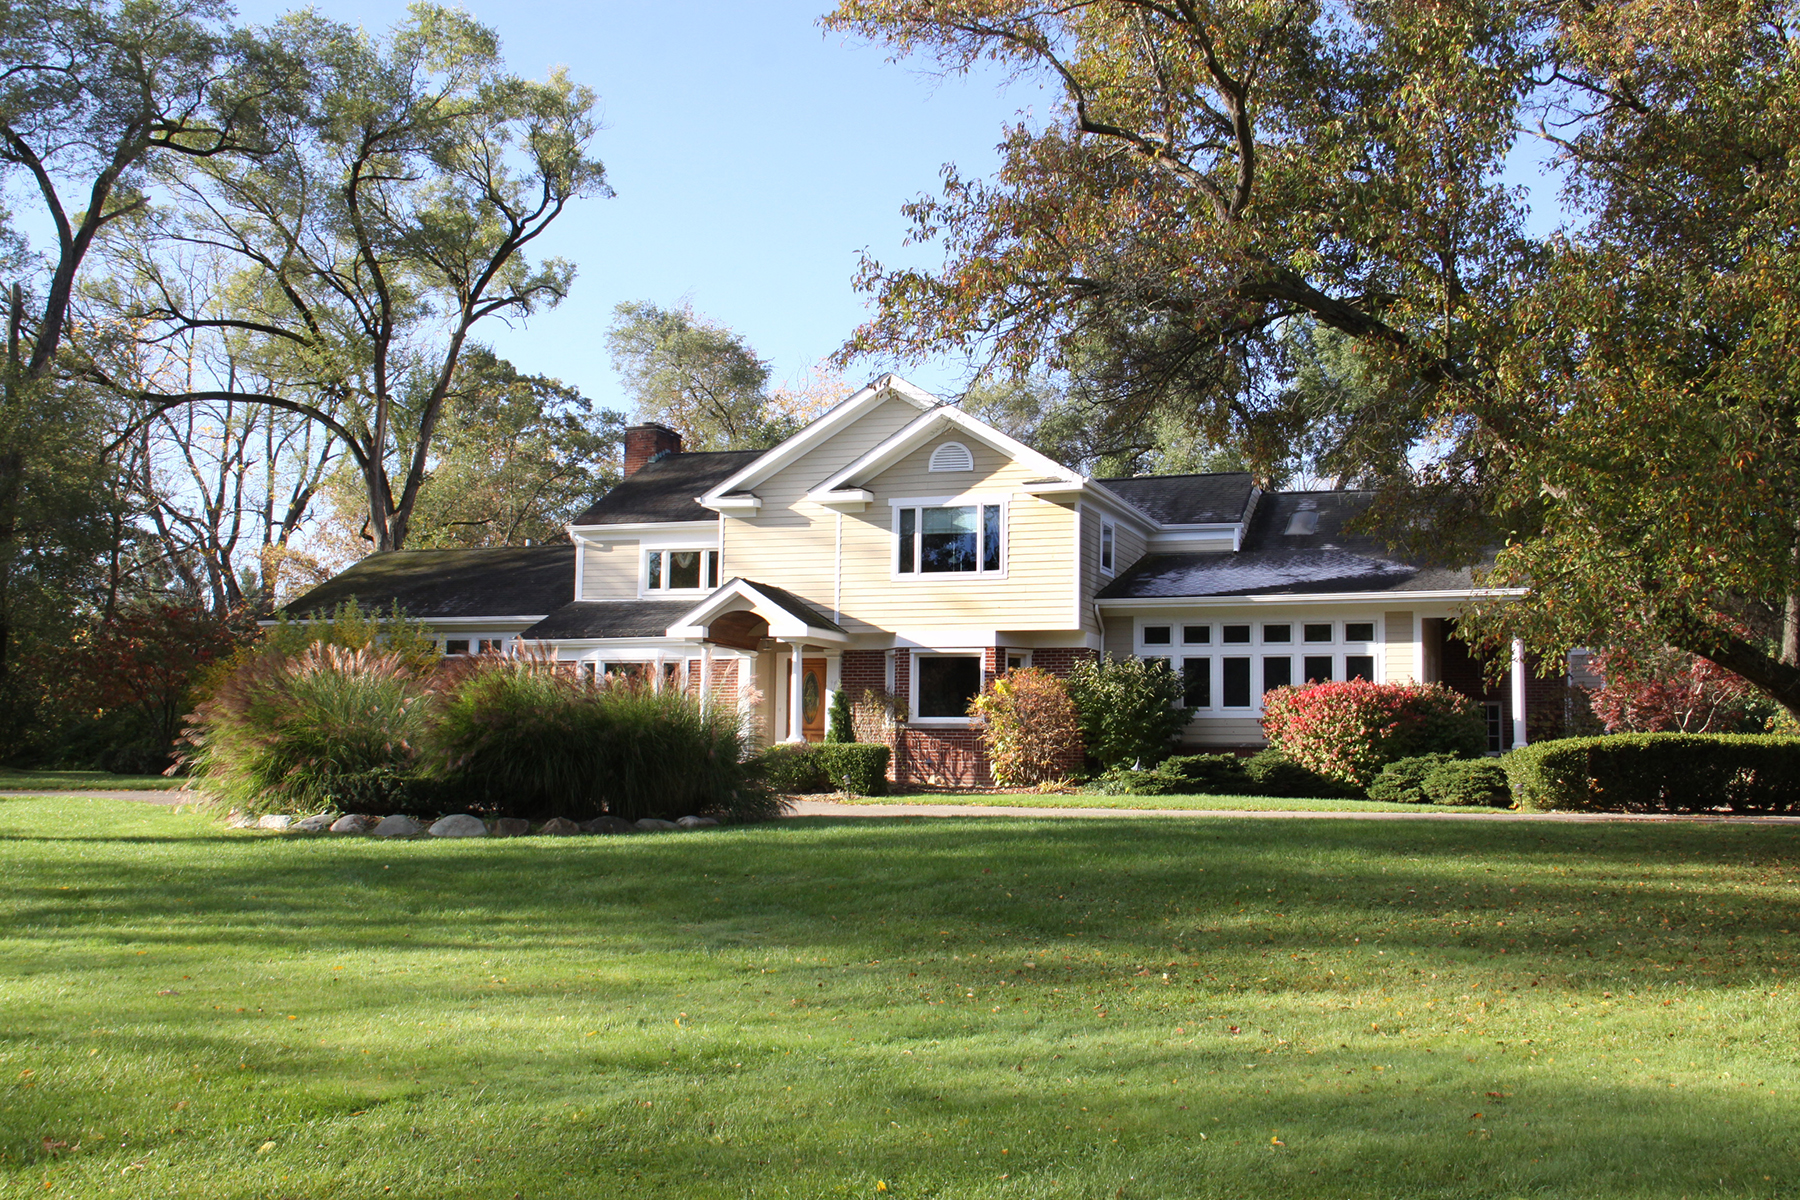 Single Family Home for Sale at Bingham Farms Village 32275 Bingham Raod, Bingham Farms, Michigan, 48025 United States